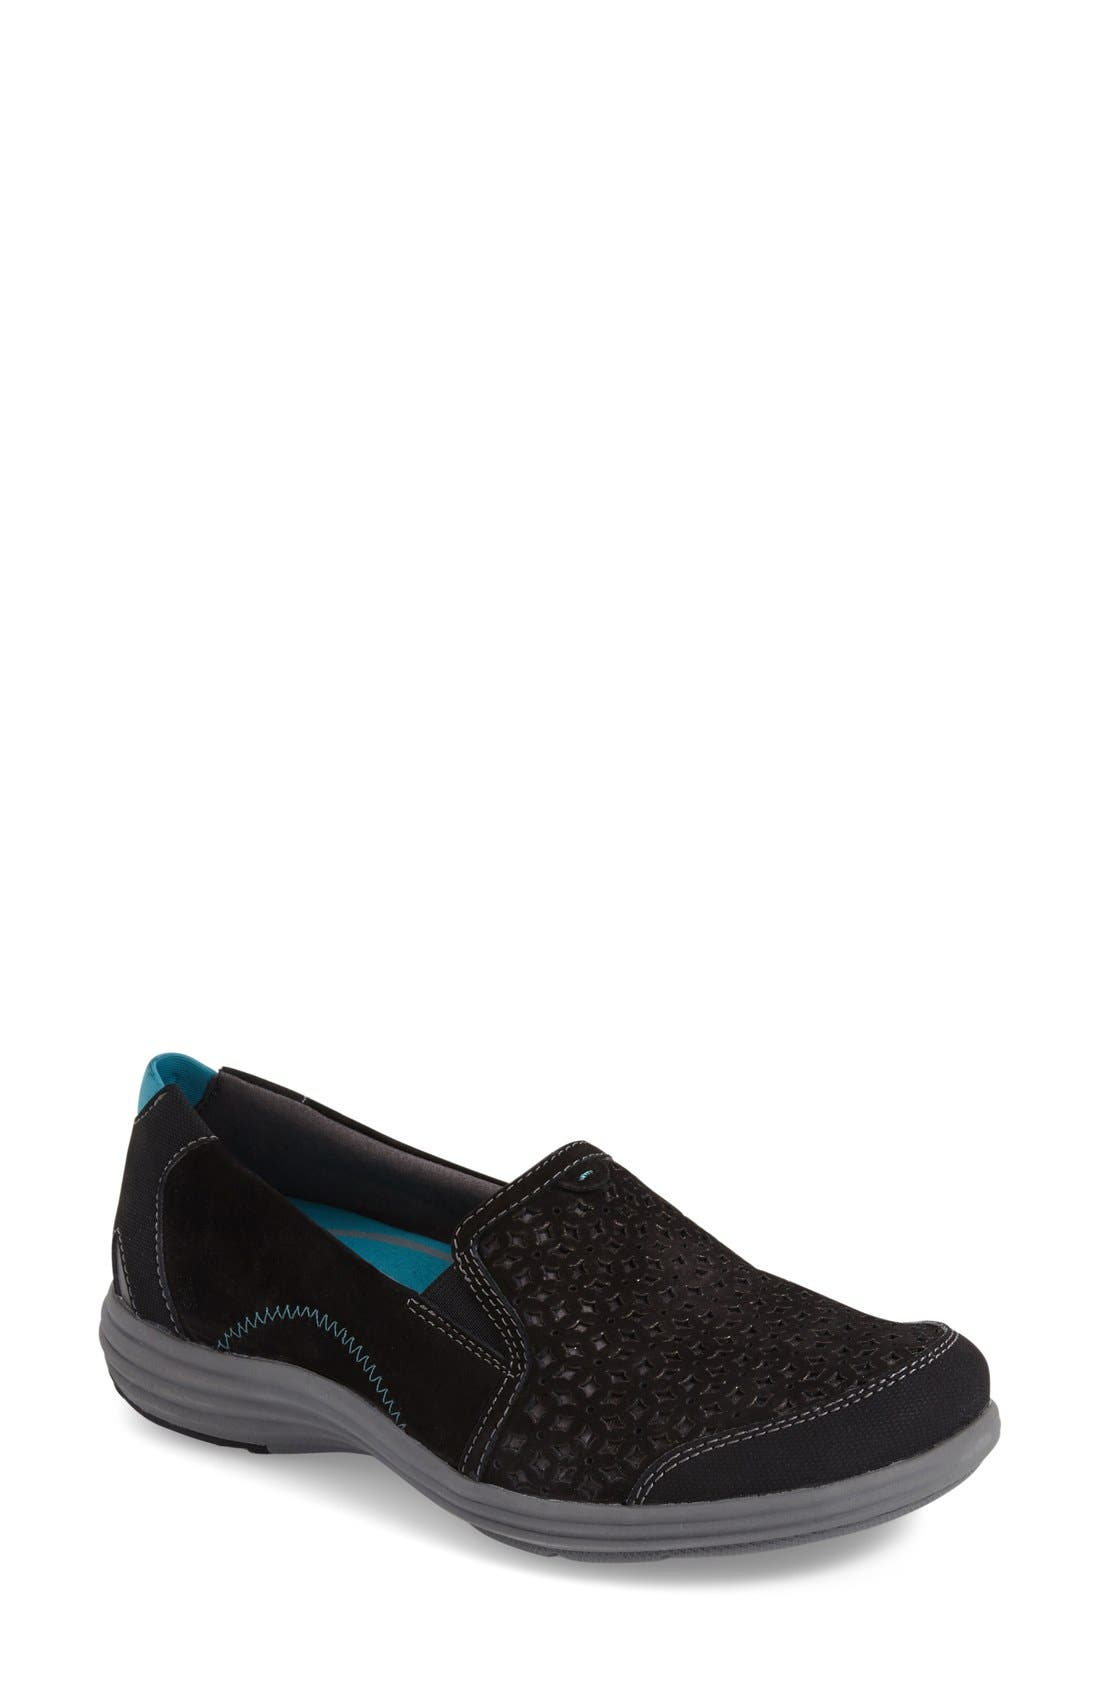 'Bonnie' Slip-On Sneaker,                             Main thumbnail 1, color,                             001